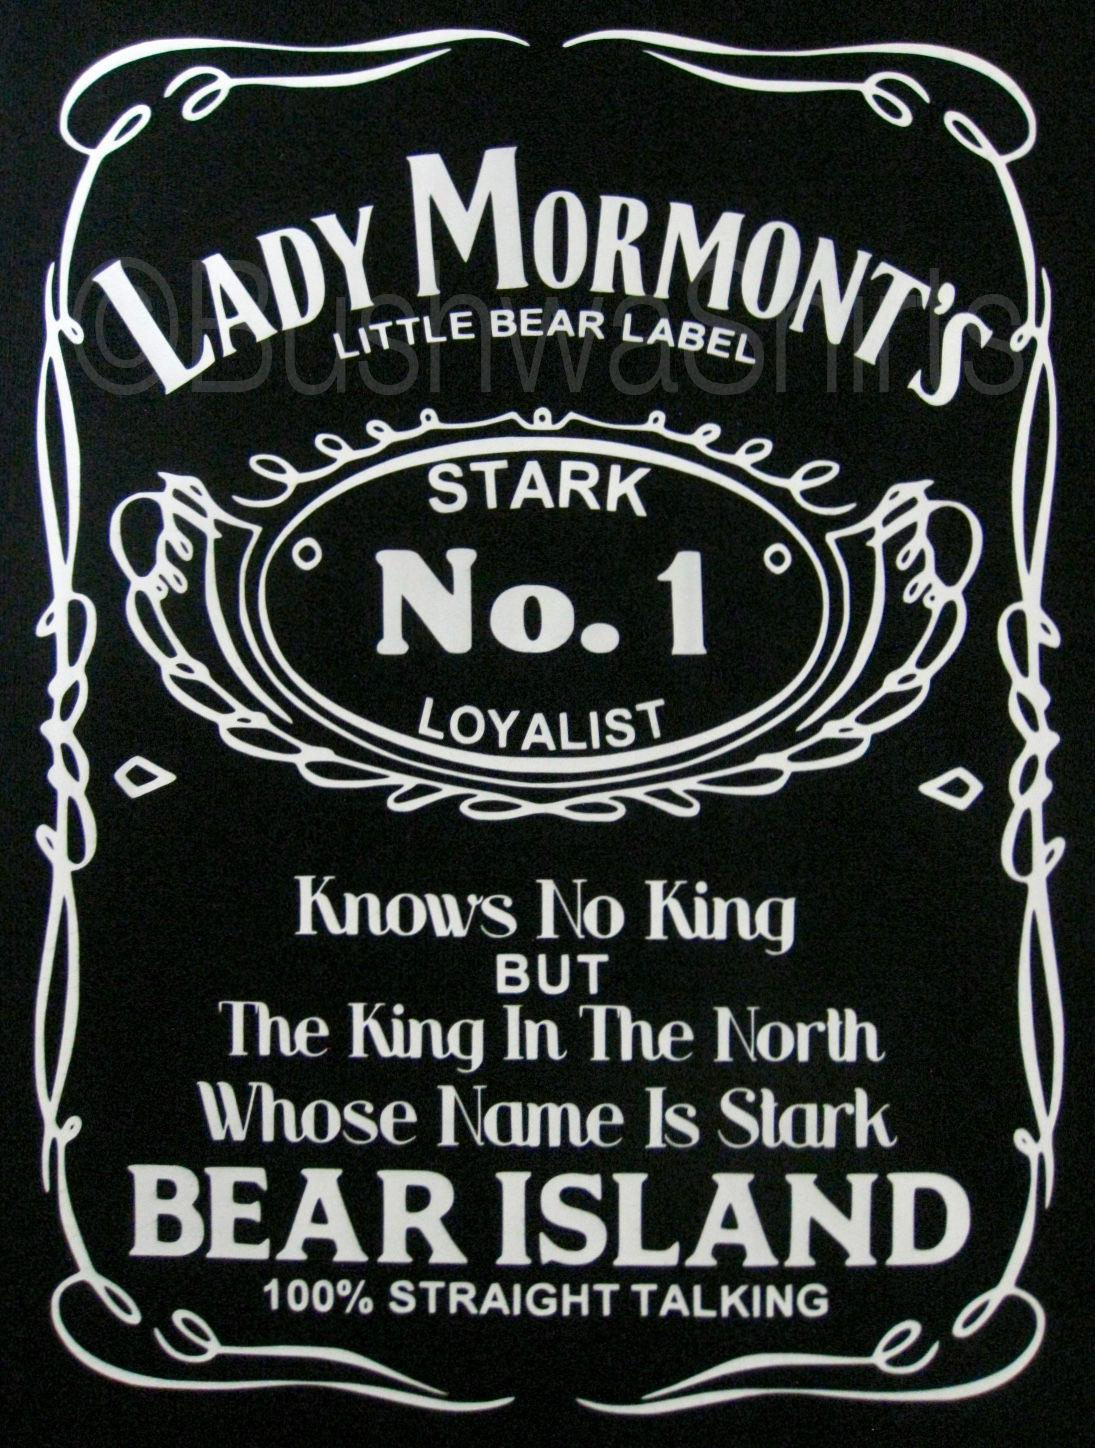 00e30b1d Lady Mormont Game Of Thrones Bear Island Inspired T Shirt Mens Women's Tee  Top Funny free shipping Unisex Casual